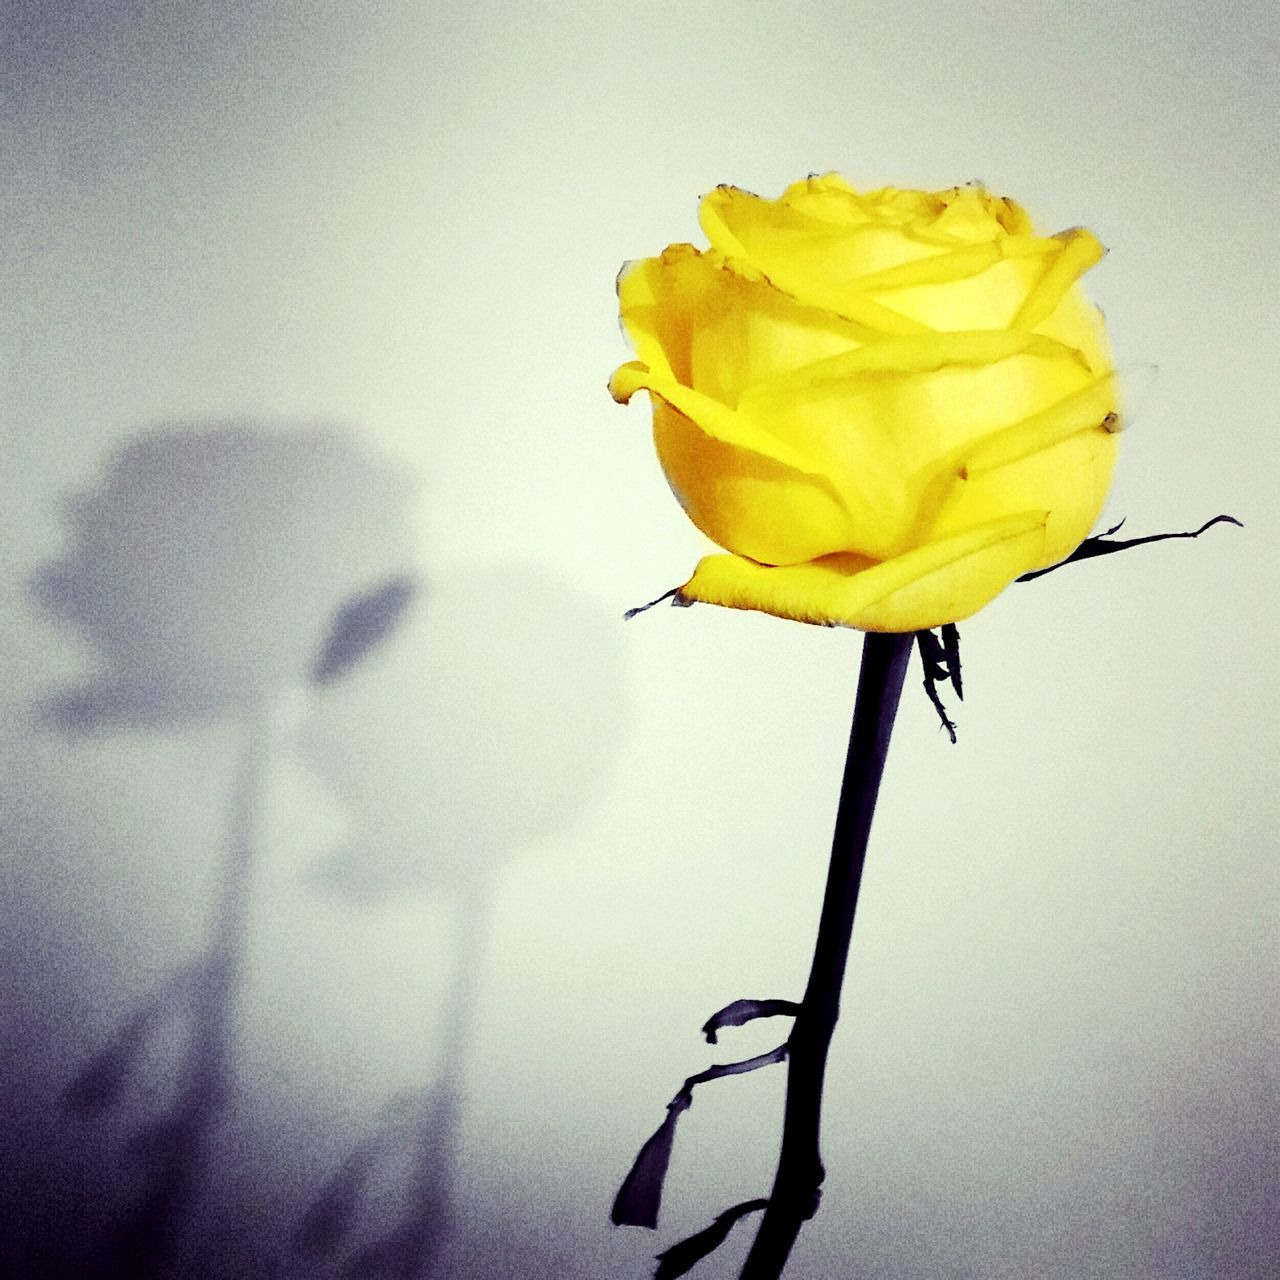 Rose - Flower Yellow Yellow No People Beauty In Nature Indoors Close-up Family No People Editoftheday EyeEm Flower Editing Fun Mom ❤ Hugs & Love  Beautiful ♥ Beauty In Nature Edited My Way